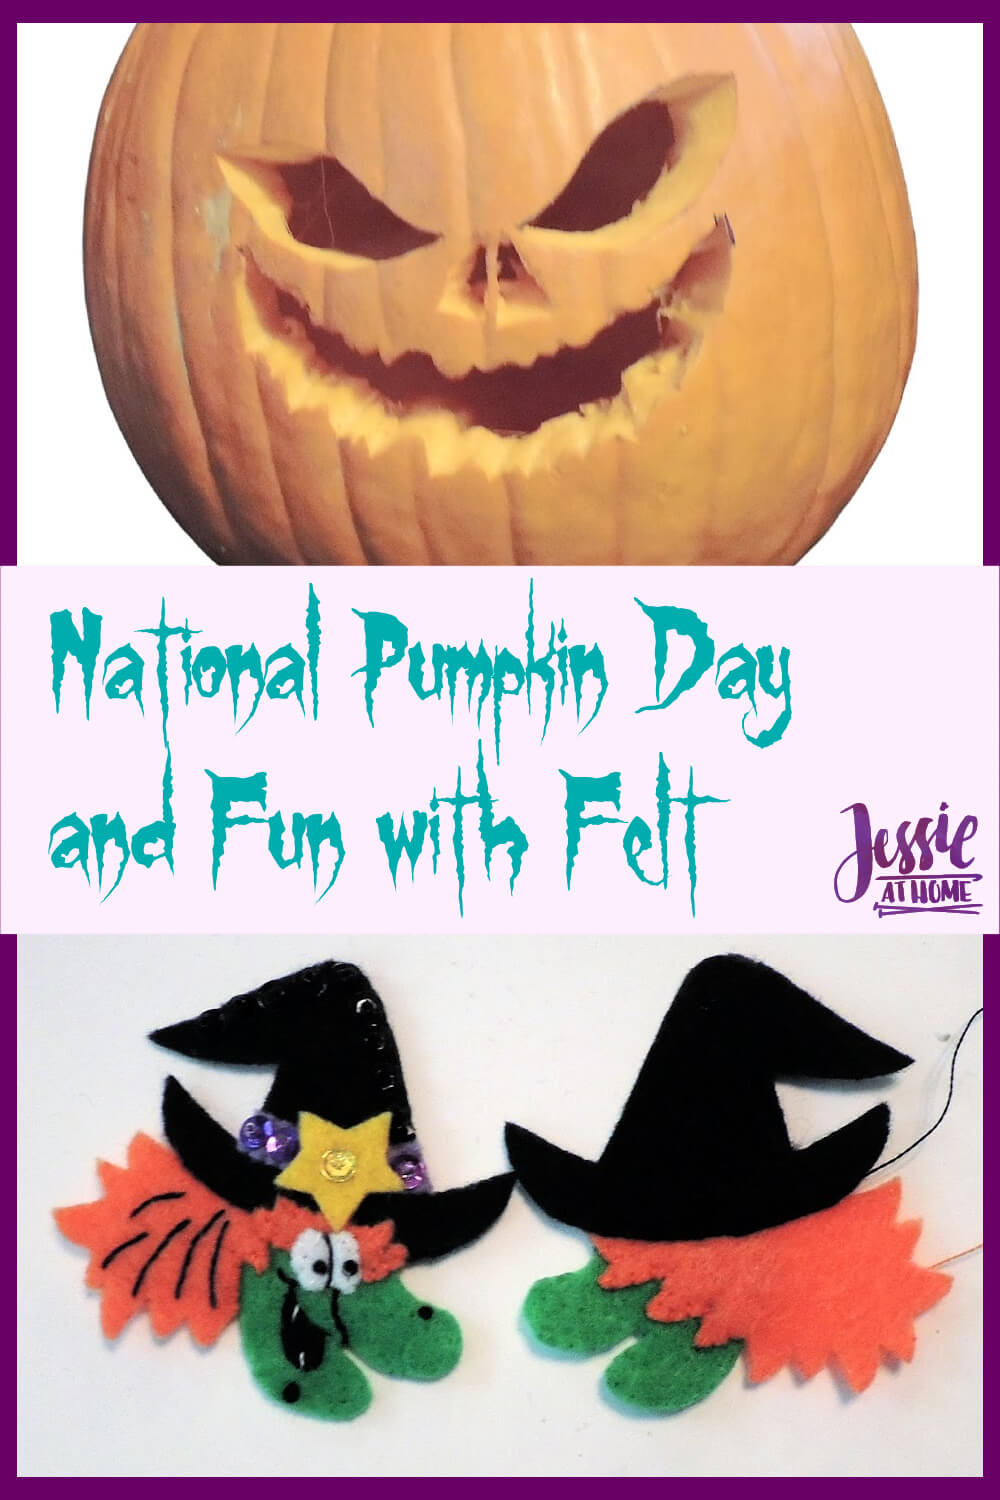 Grrr! Arrr! National Pumpkin Day and Fun with Felt